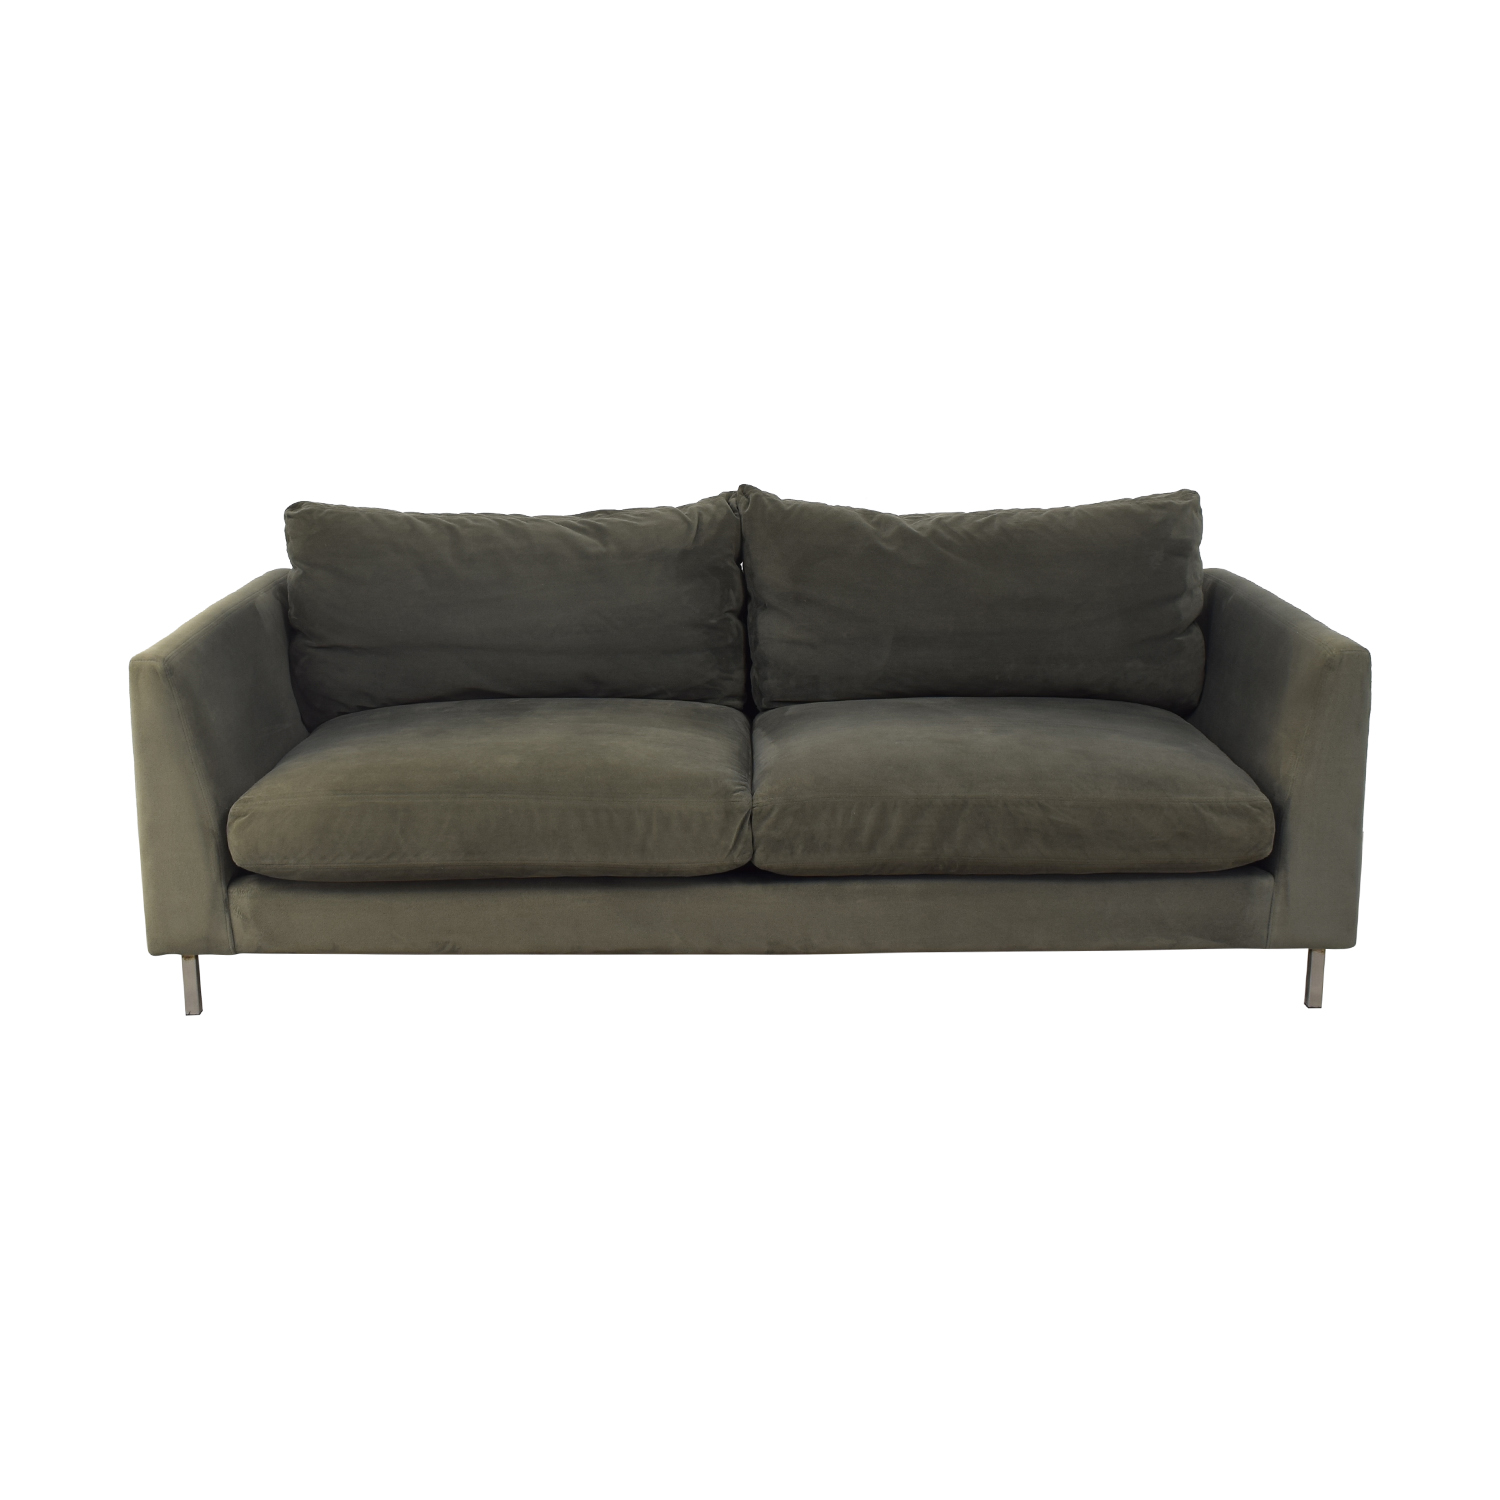 Room & Board Room & Board Bryce Two Cushion Sofa nj